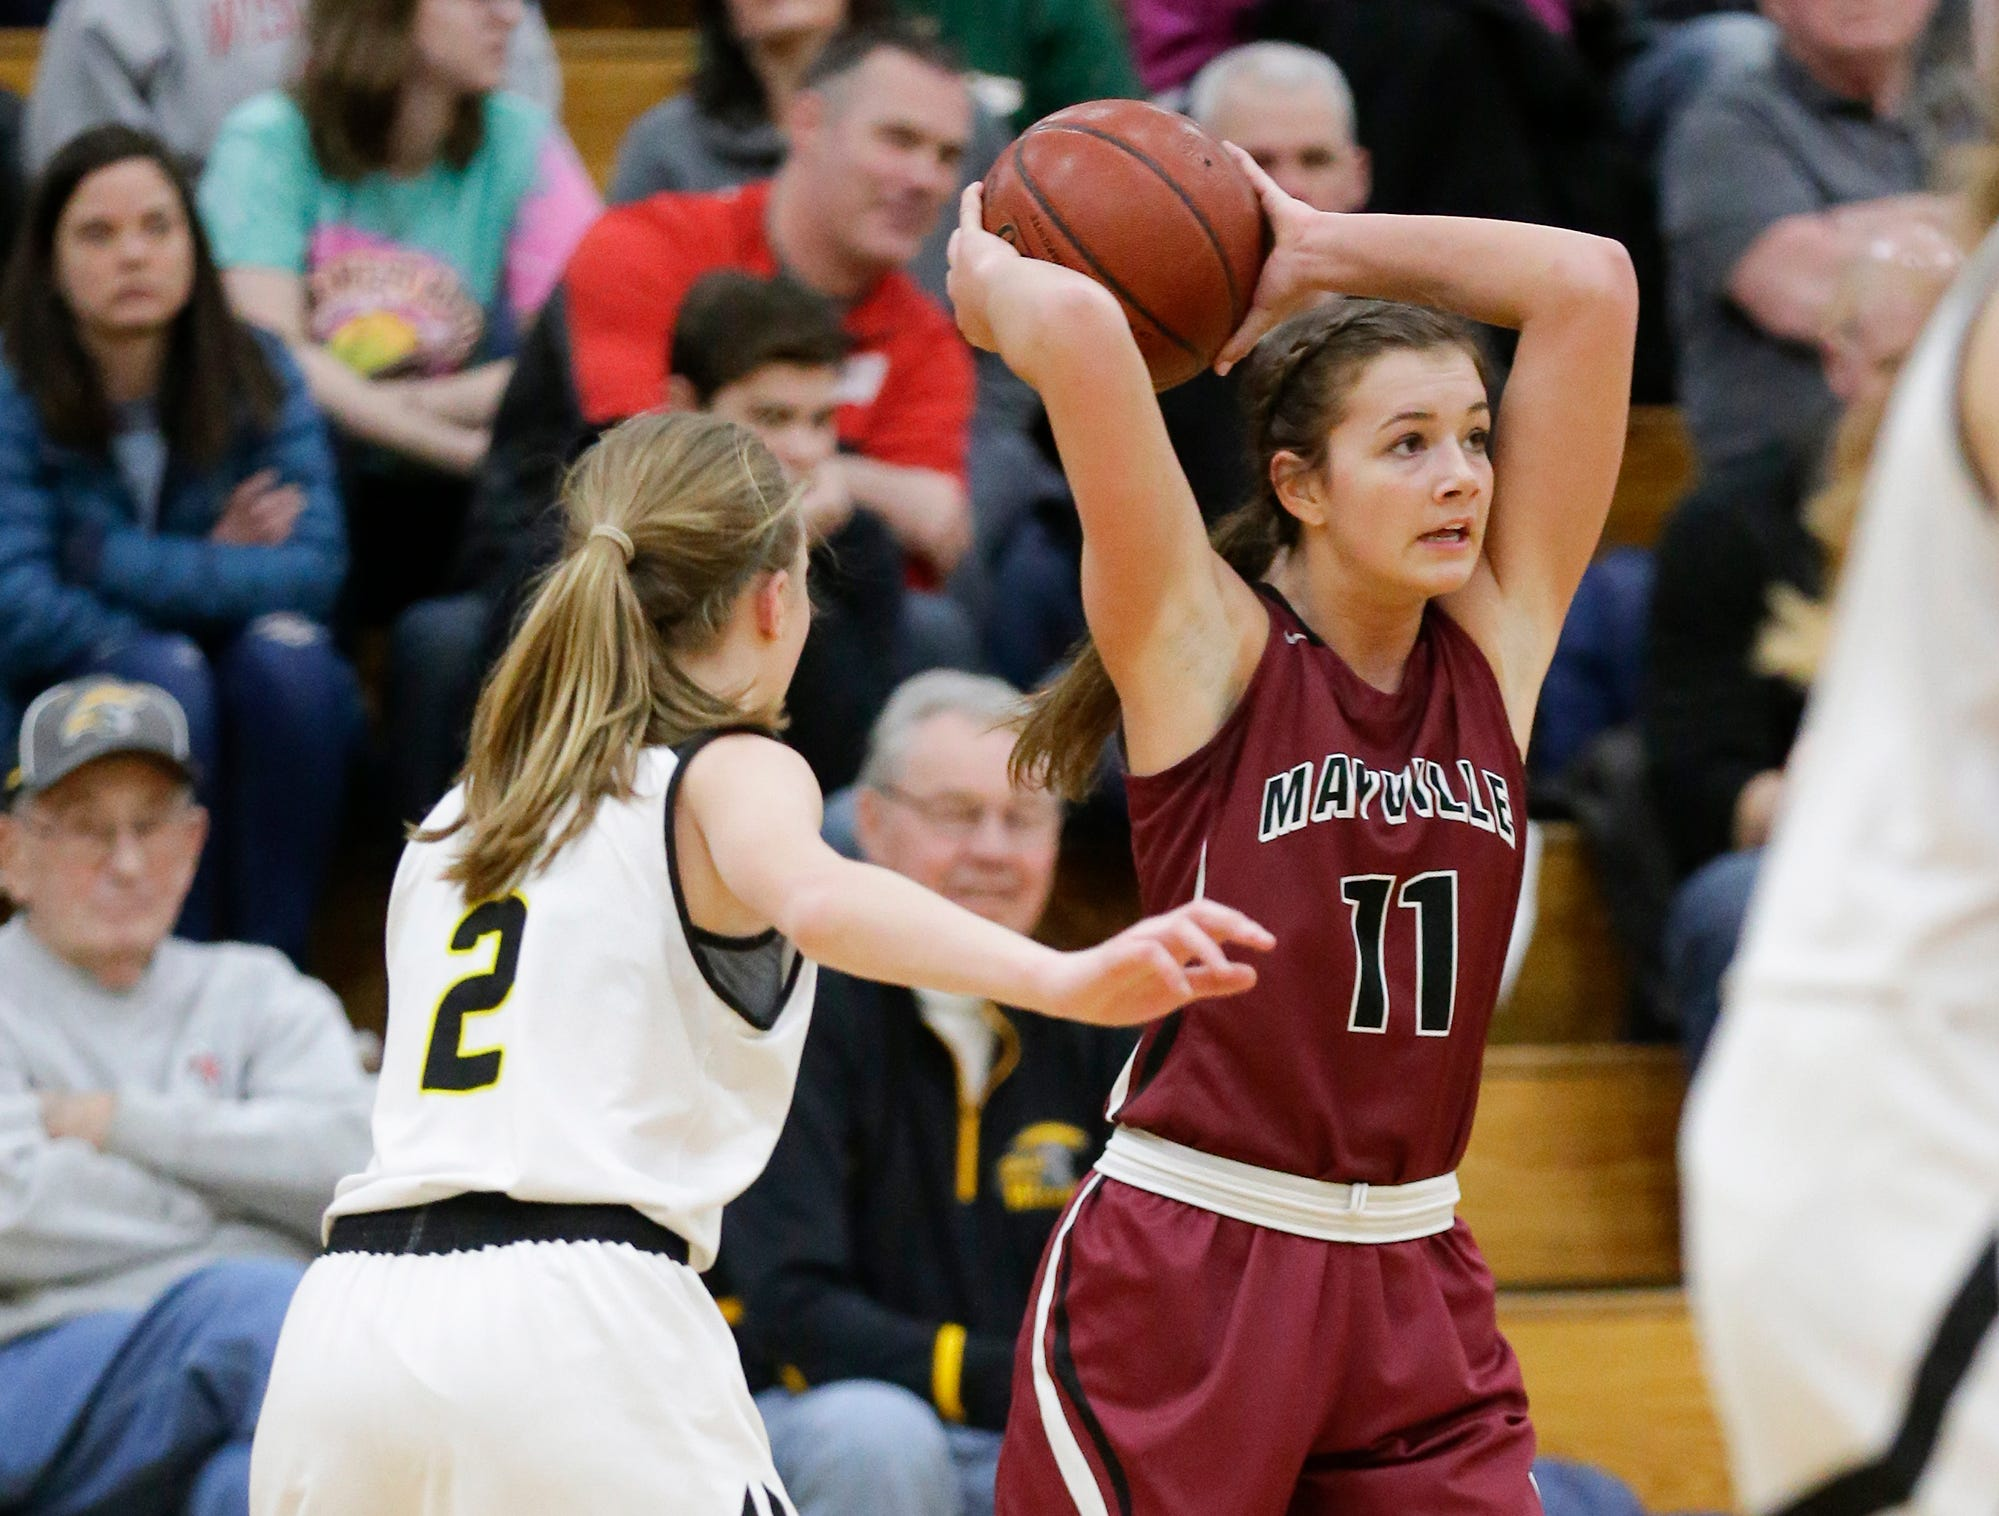 Mayville High School girls basketball's Whitney Liegl passes the ball while defended by Waupun High School's Naomi Aalsma (2) Saturday, February 23, 2019 during their WIAA Division 4 sectional quarterfinal game in Waupun. Waupun won the game 62-45. Doug Raflik/USA TODAY NETWORK-Wisconsin